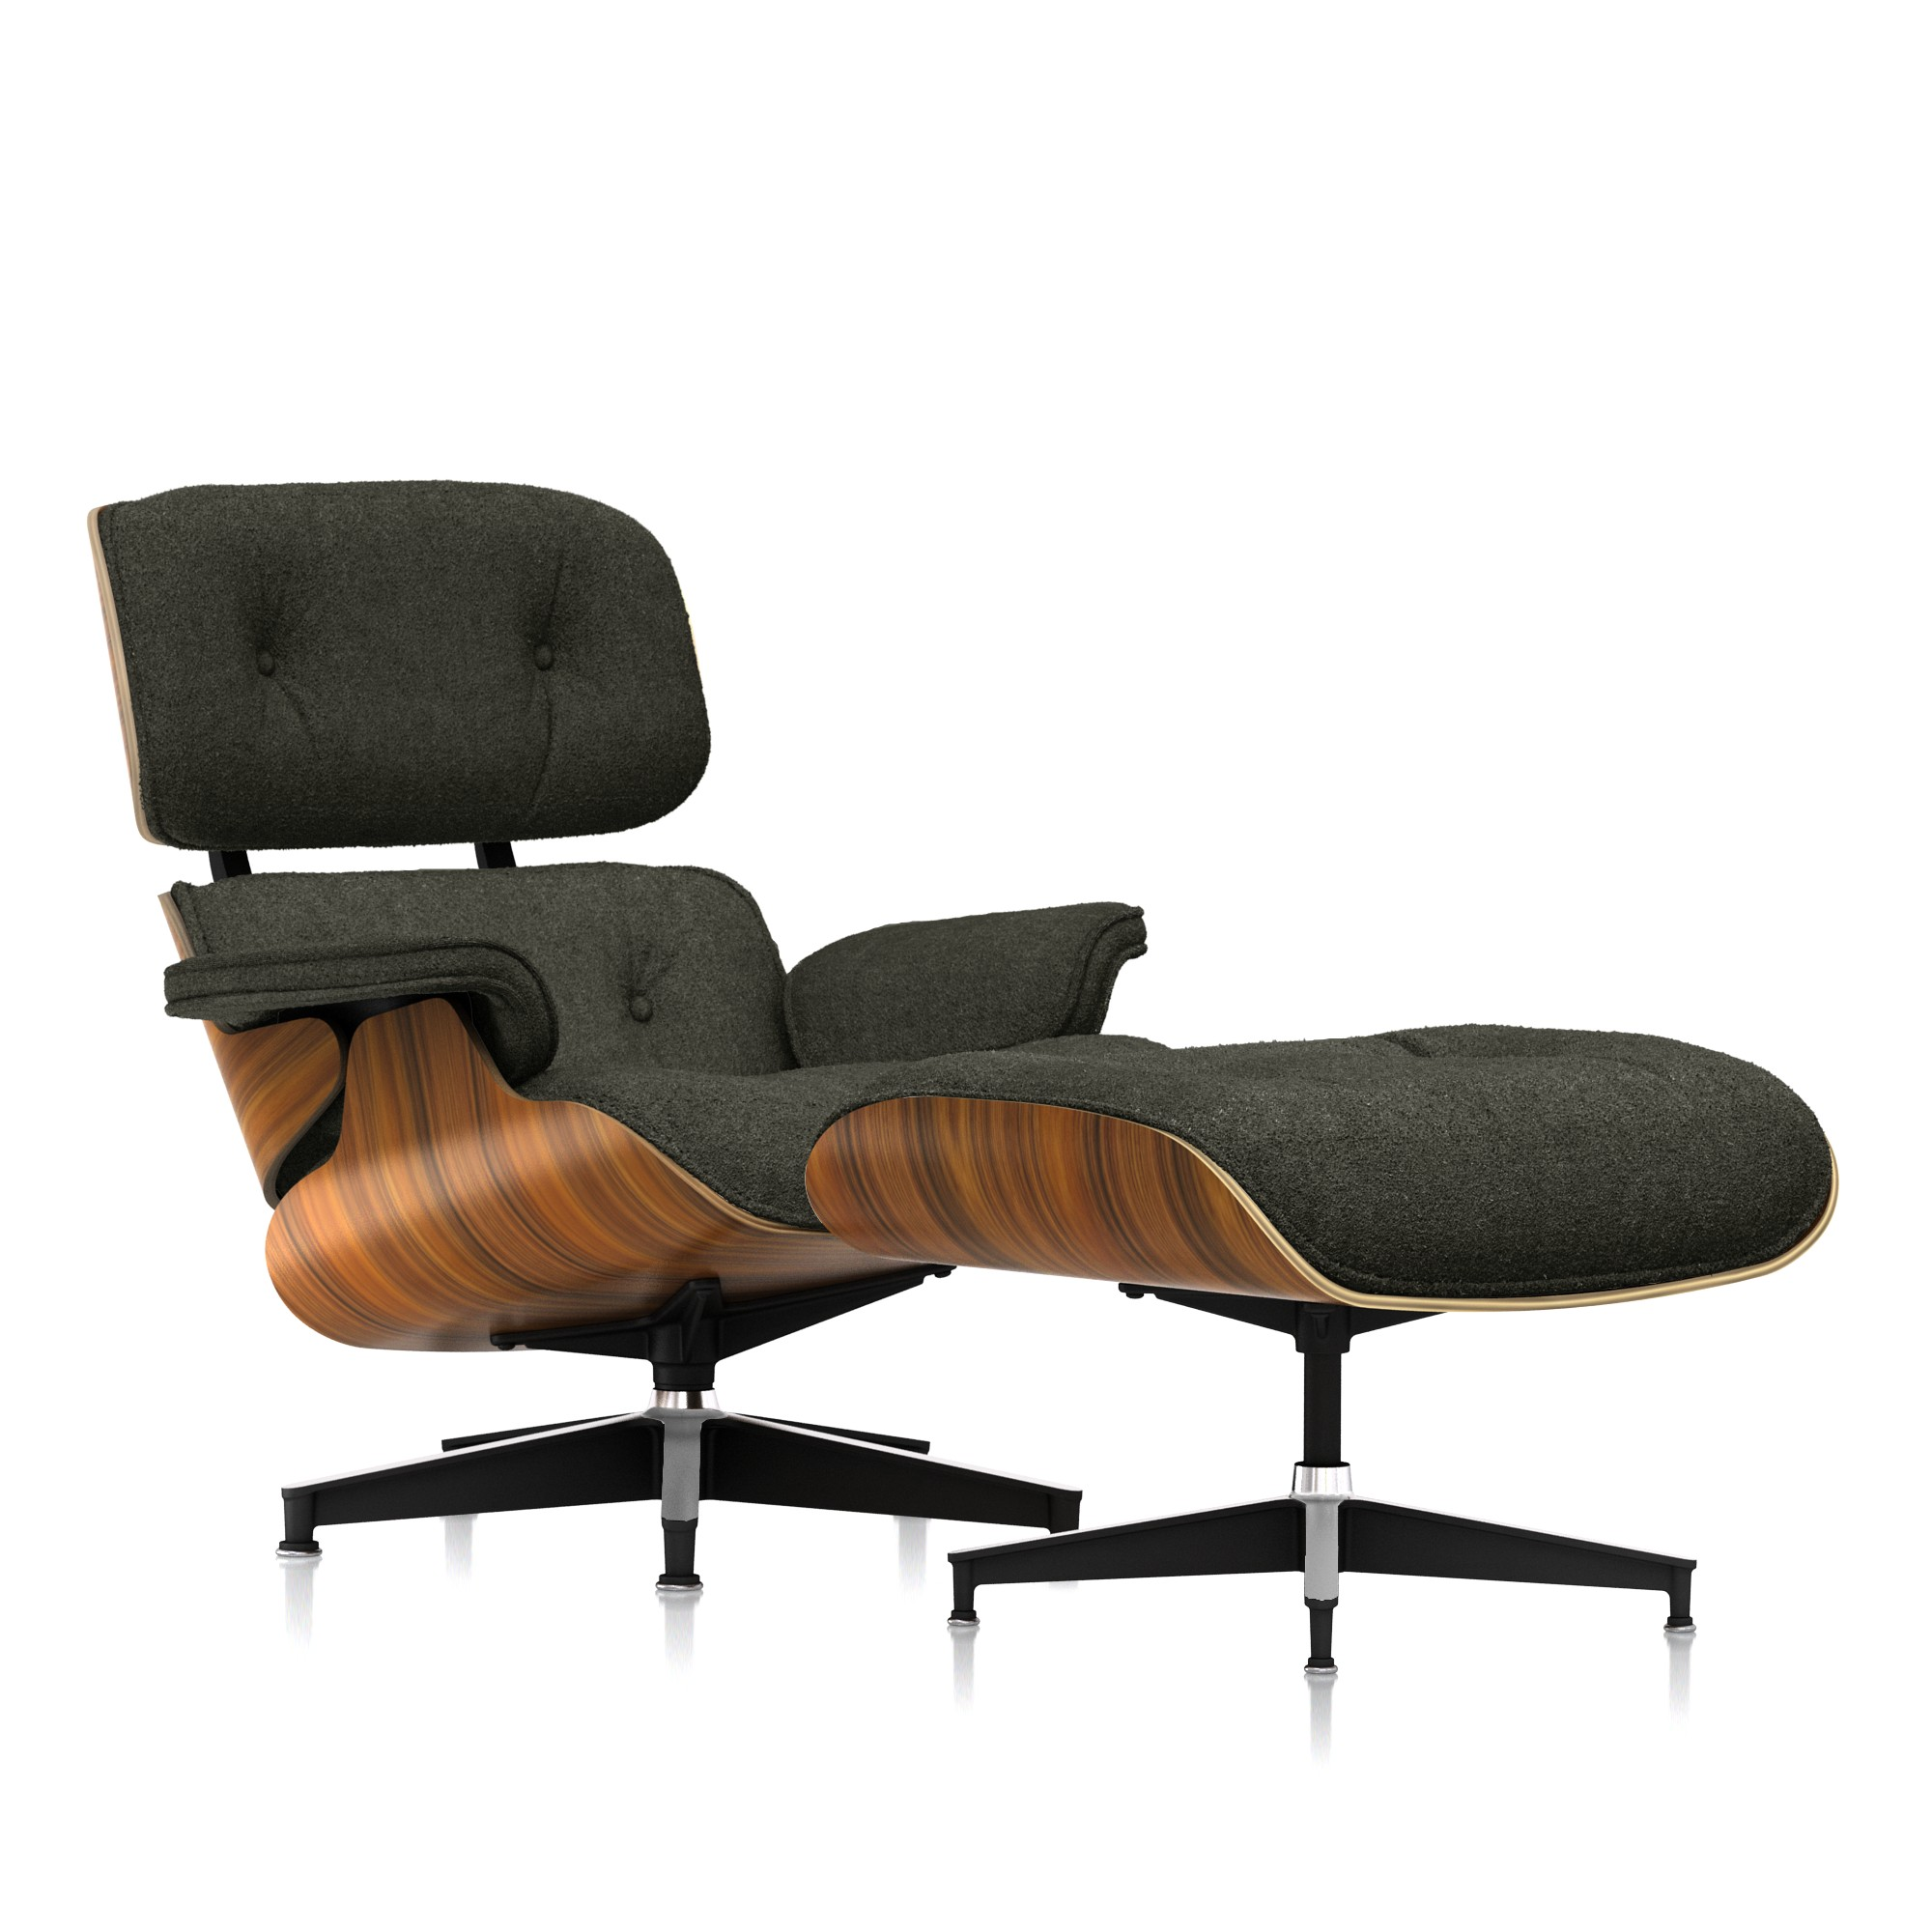 Eames Lounge Chair and Ottoman in Armory Mohair Supreme Classic by Herman Miller